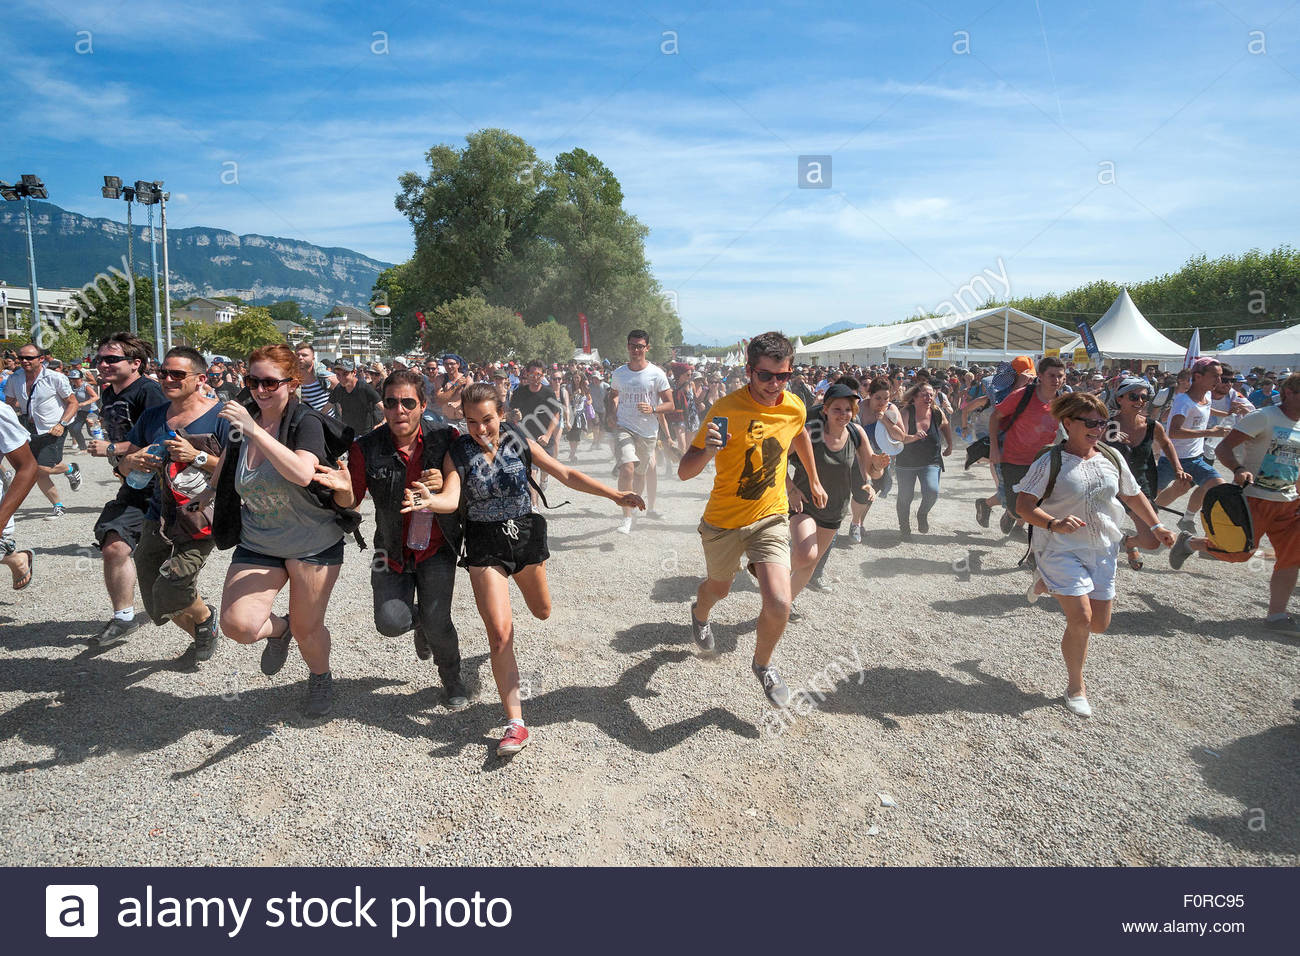 young-people-running-to-see-their-favori